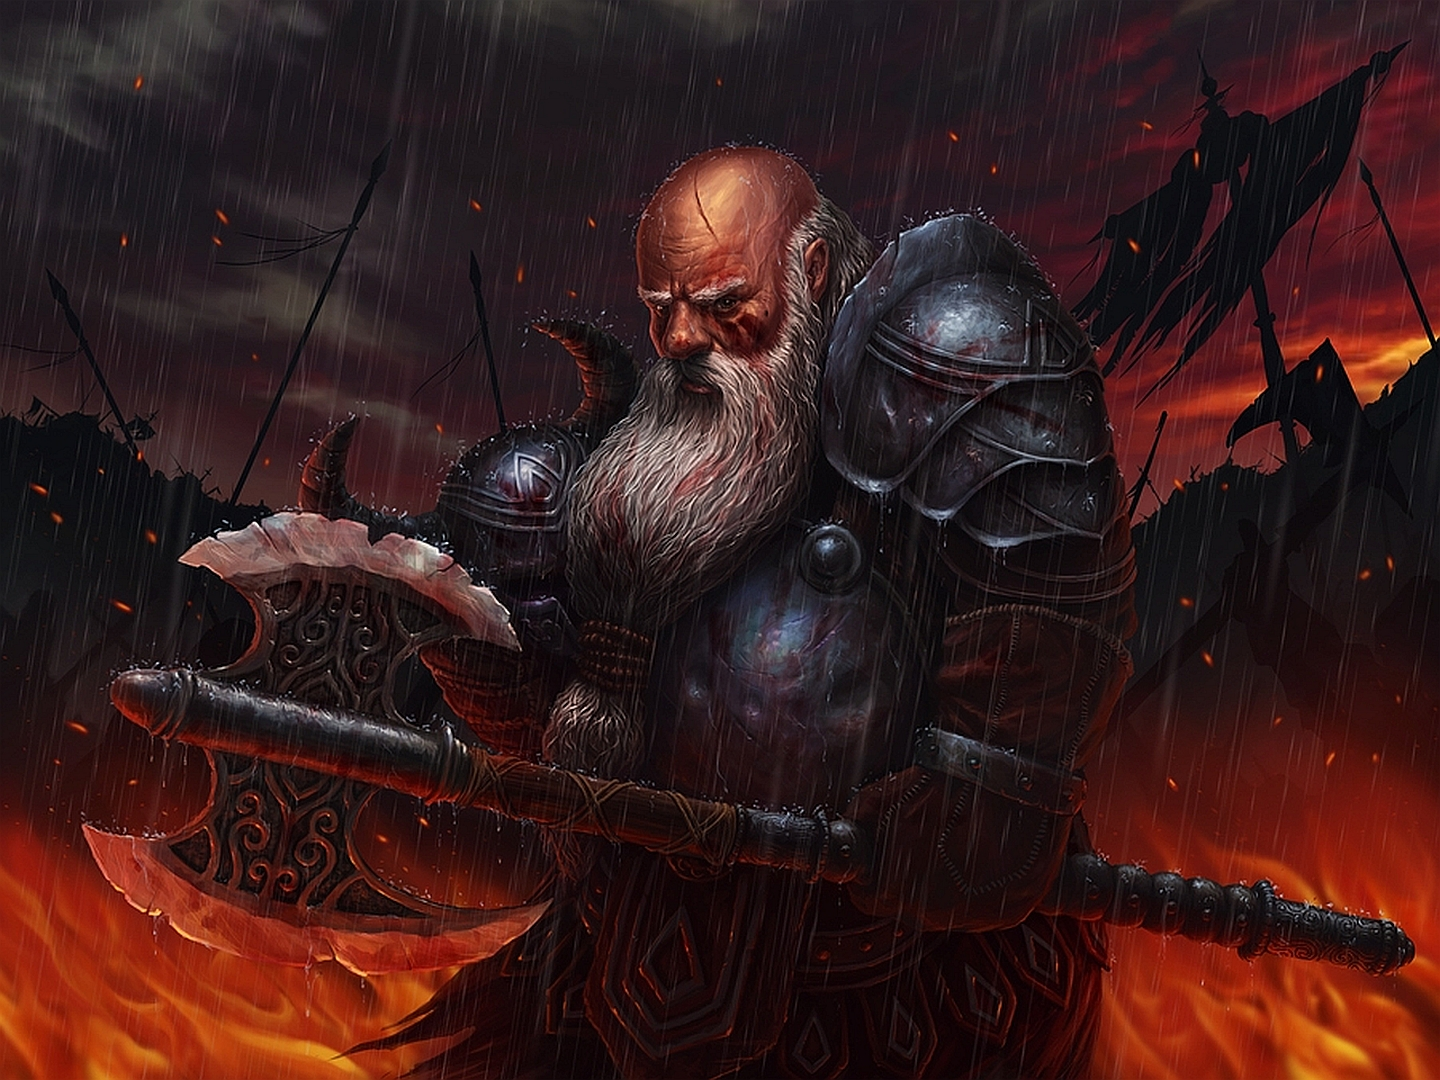 Dwarf Wallpaper and Background Image  1440x1080  ID326237